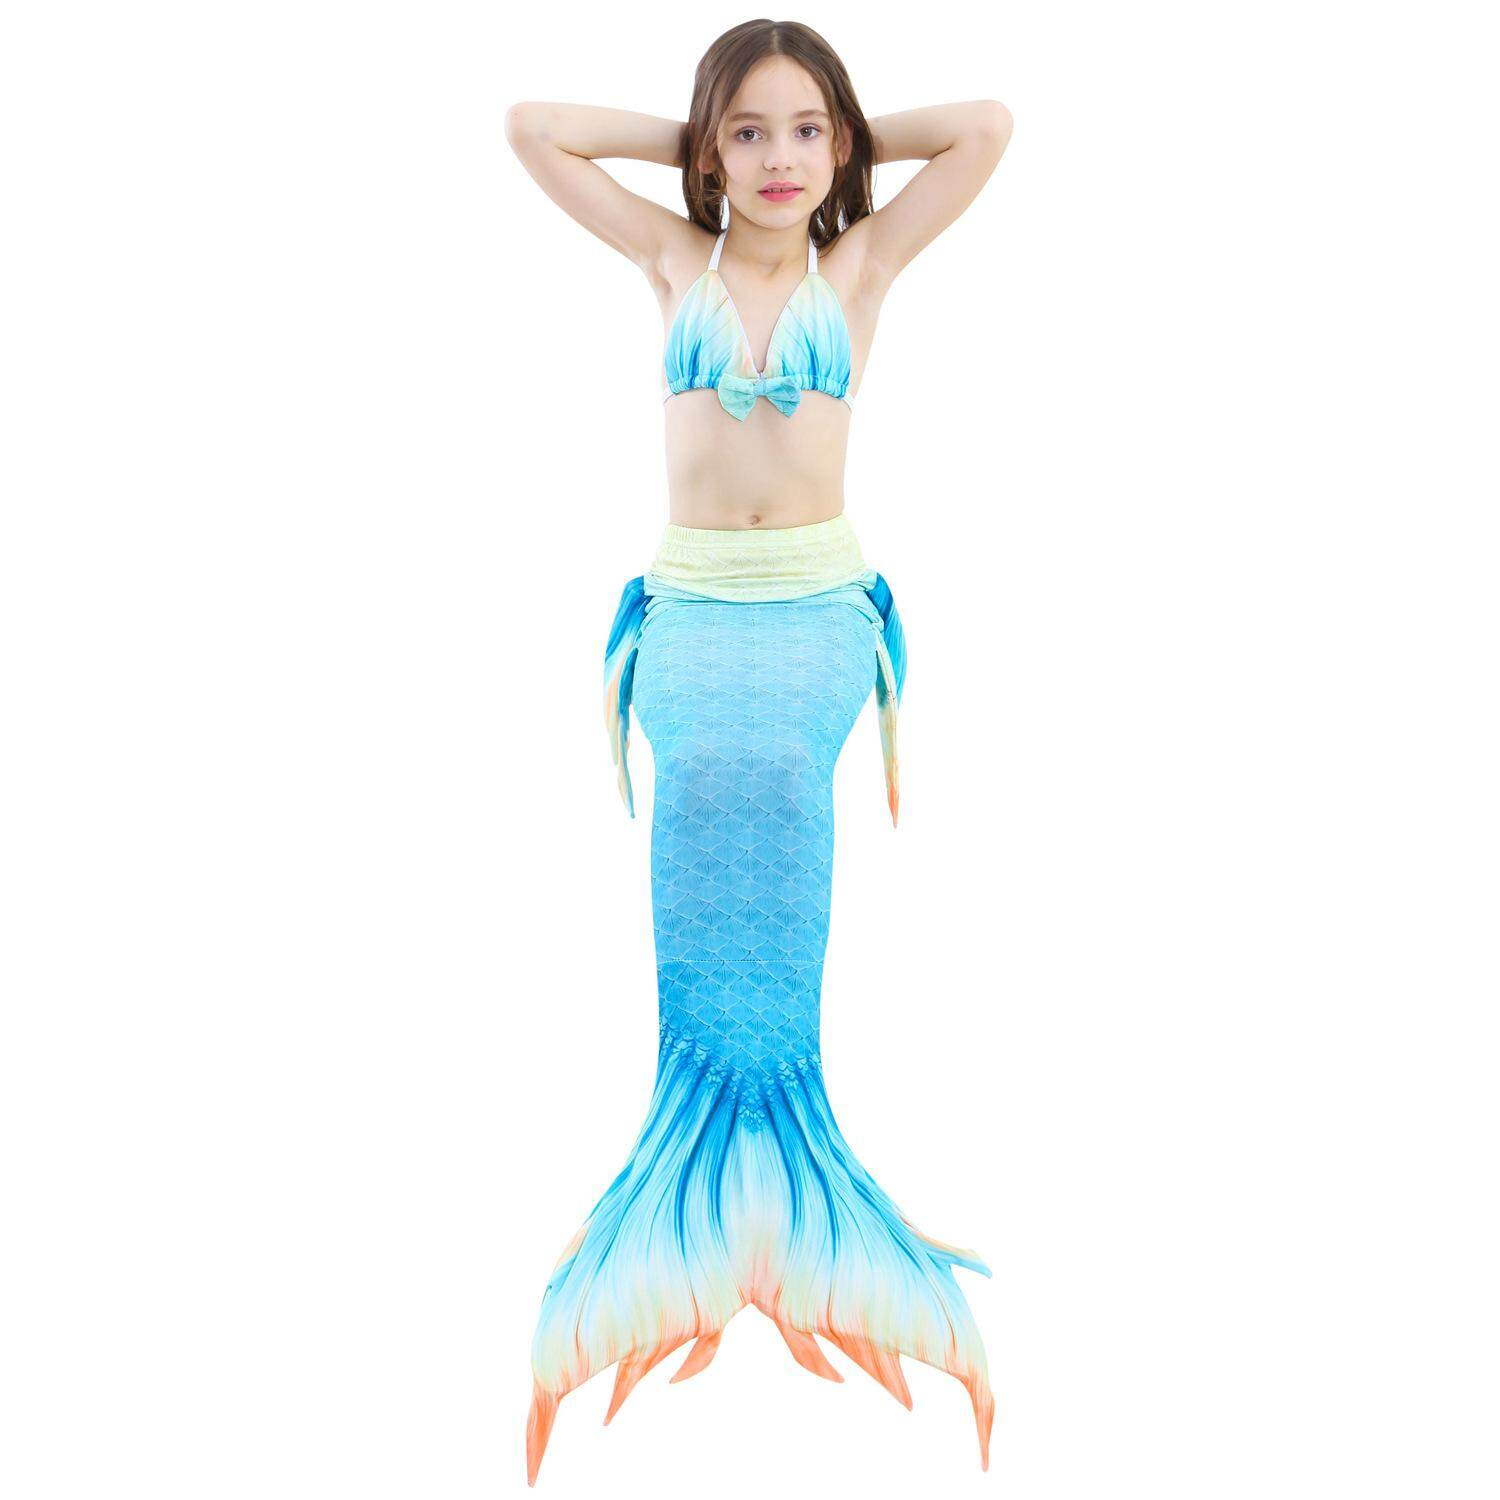 Fitur Dn Girls Summer Mermaid Tail Swimsuit Kids Girls Fancy